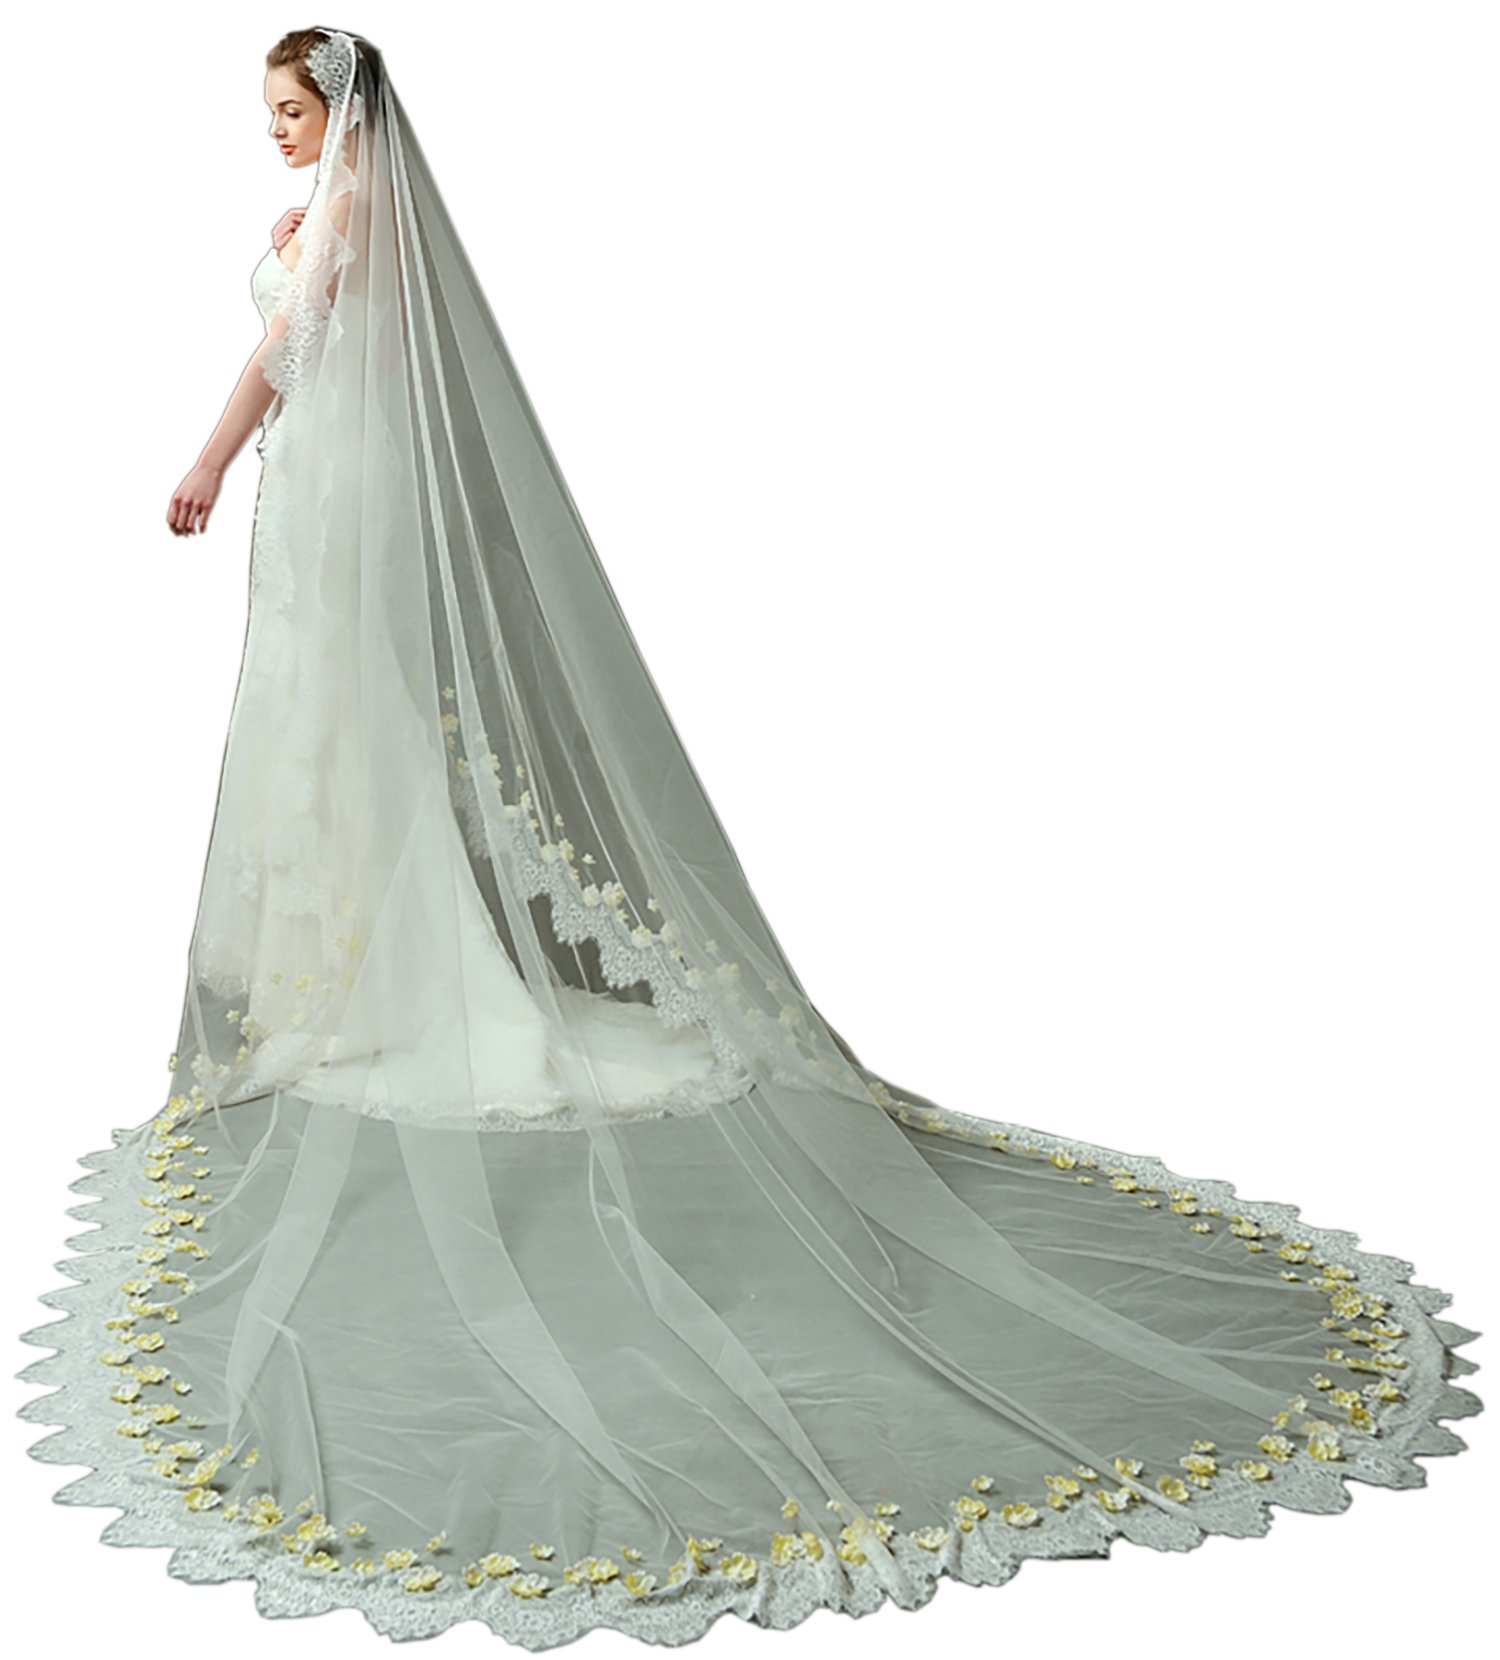 LynnBridal Romantic Royal Scalloped Lace Trim Wedding Veil with Yellow Flowers